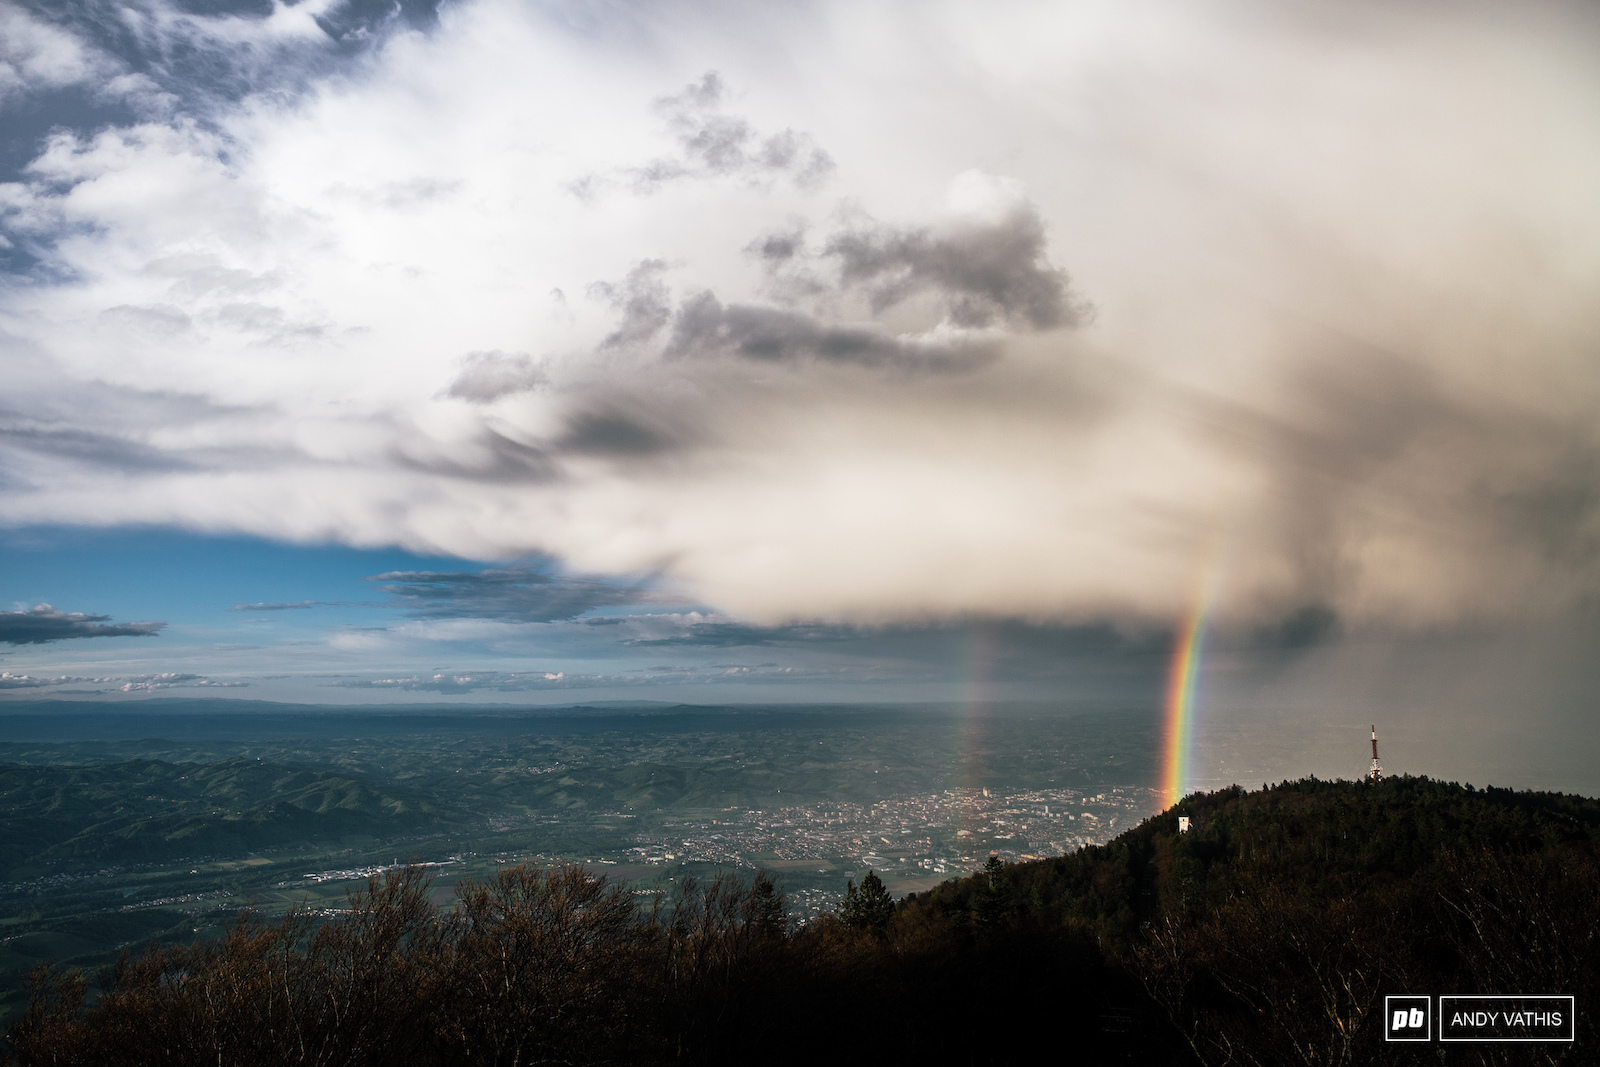 Storms pass through Maribor leaving behind an epic show of colours.